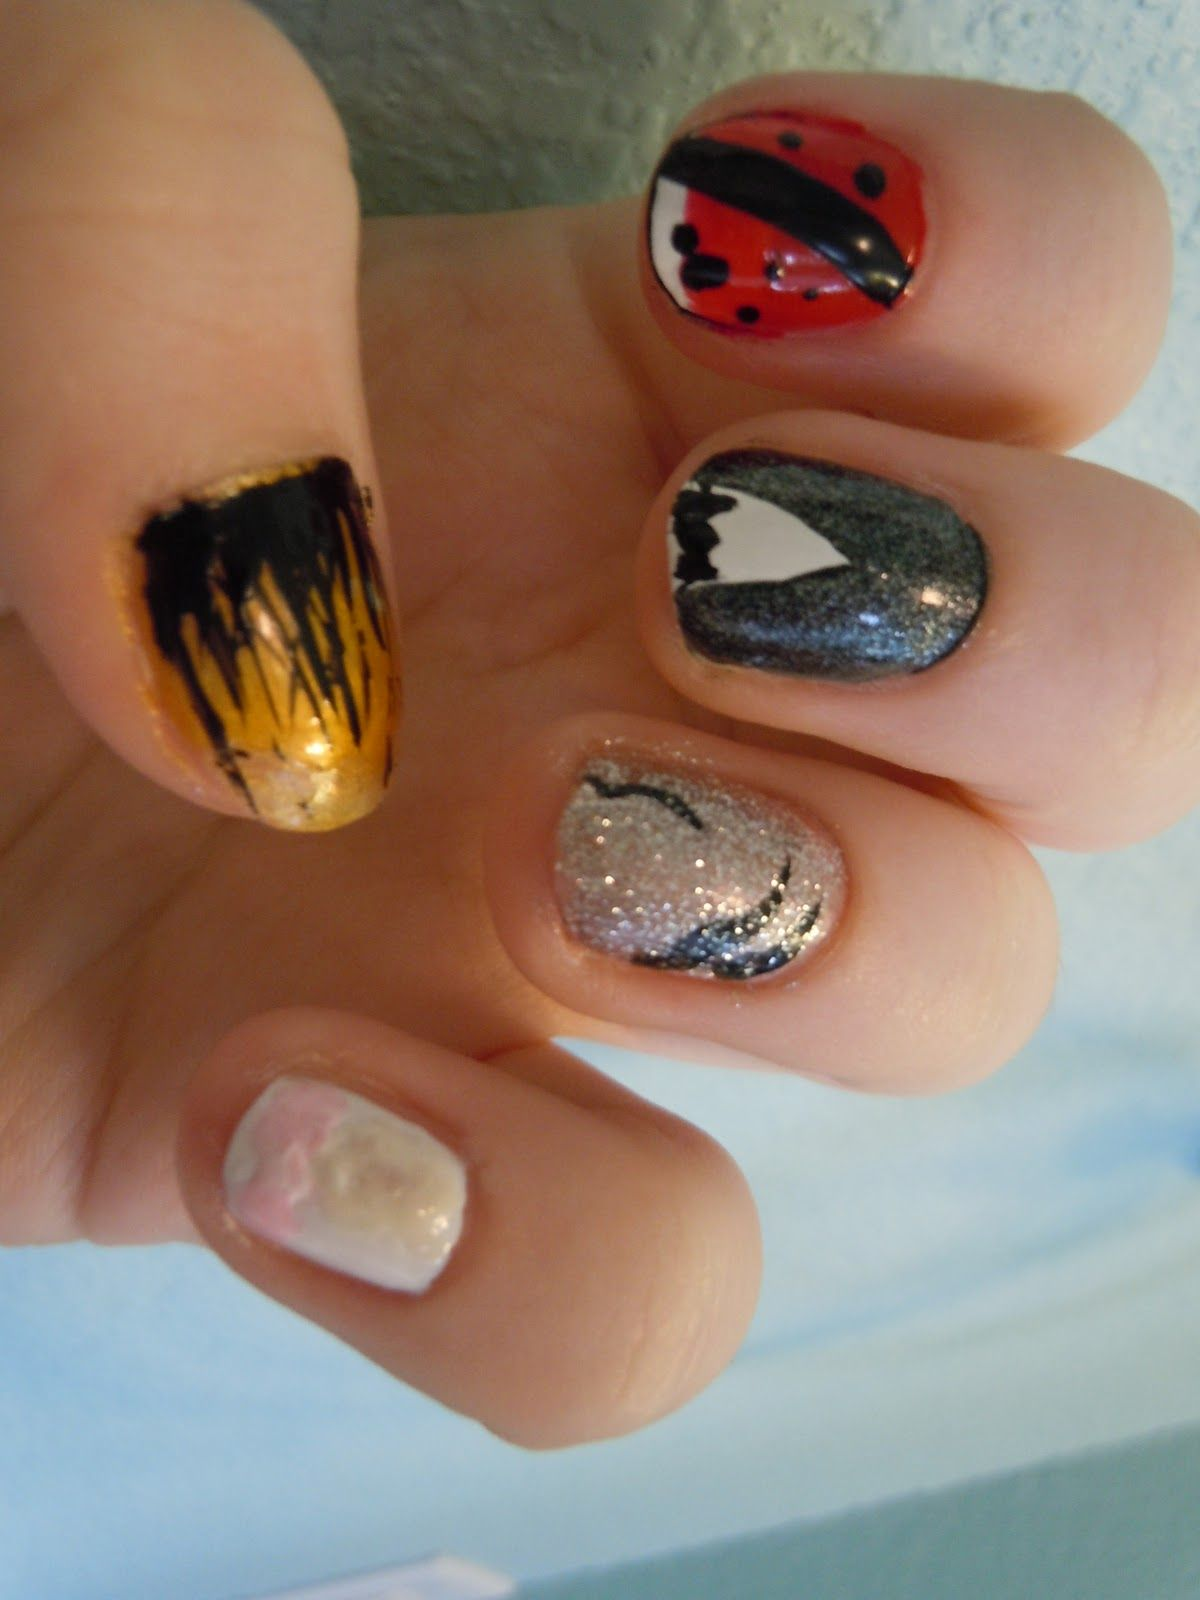 How To Use Water Marbling Nail Artwork - charming nails prices ...